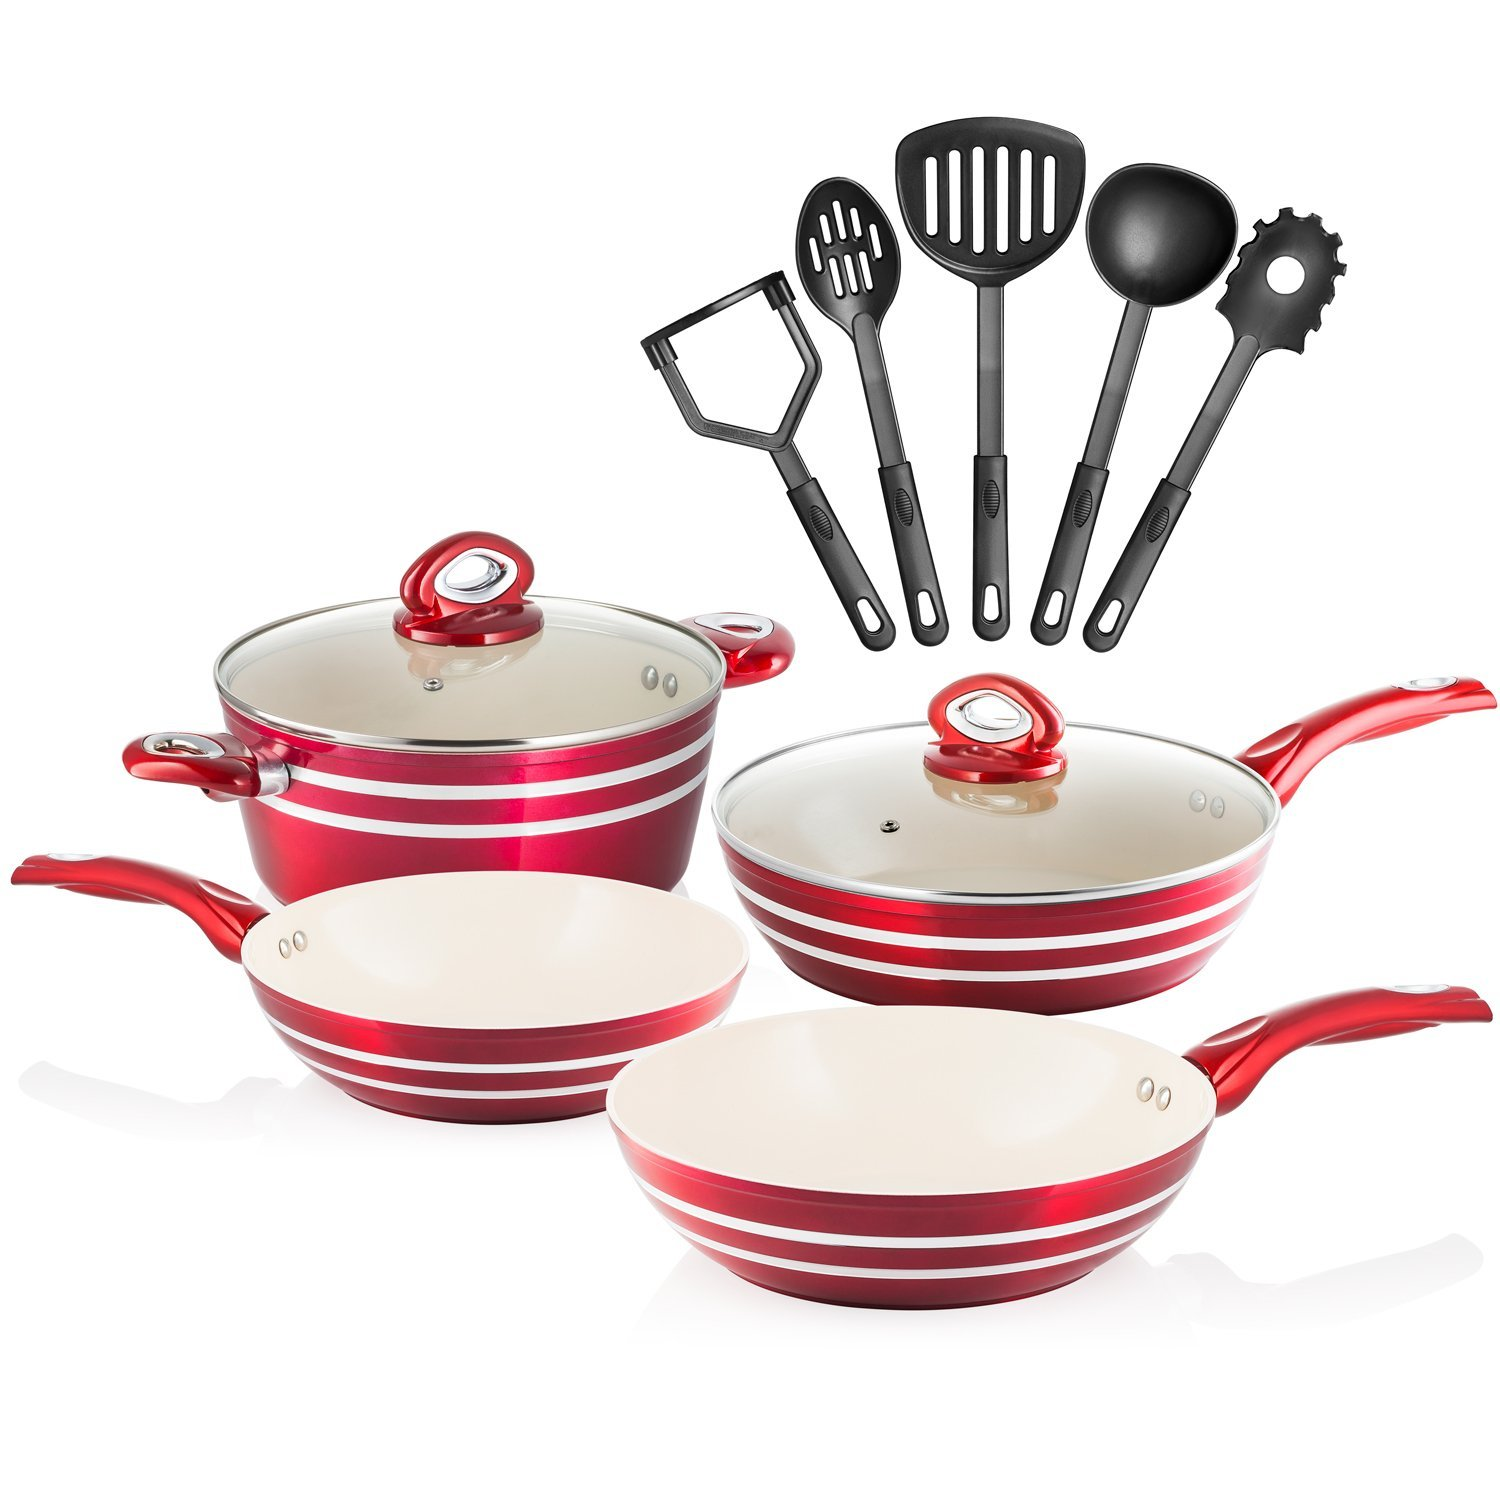 New Release And Best Cookware Sets Discount Up To 79